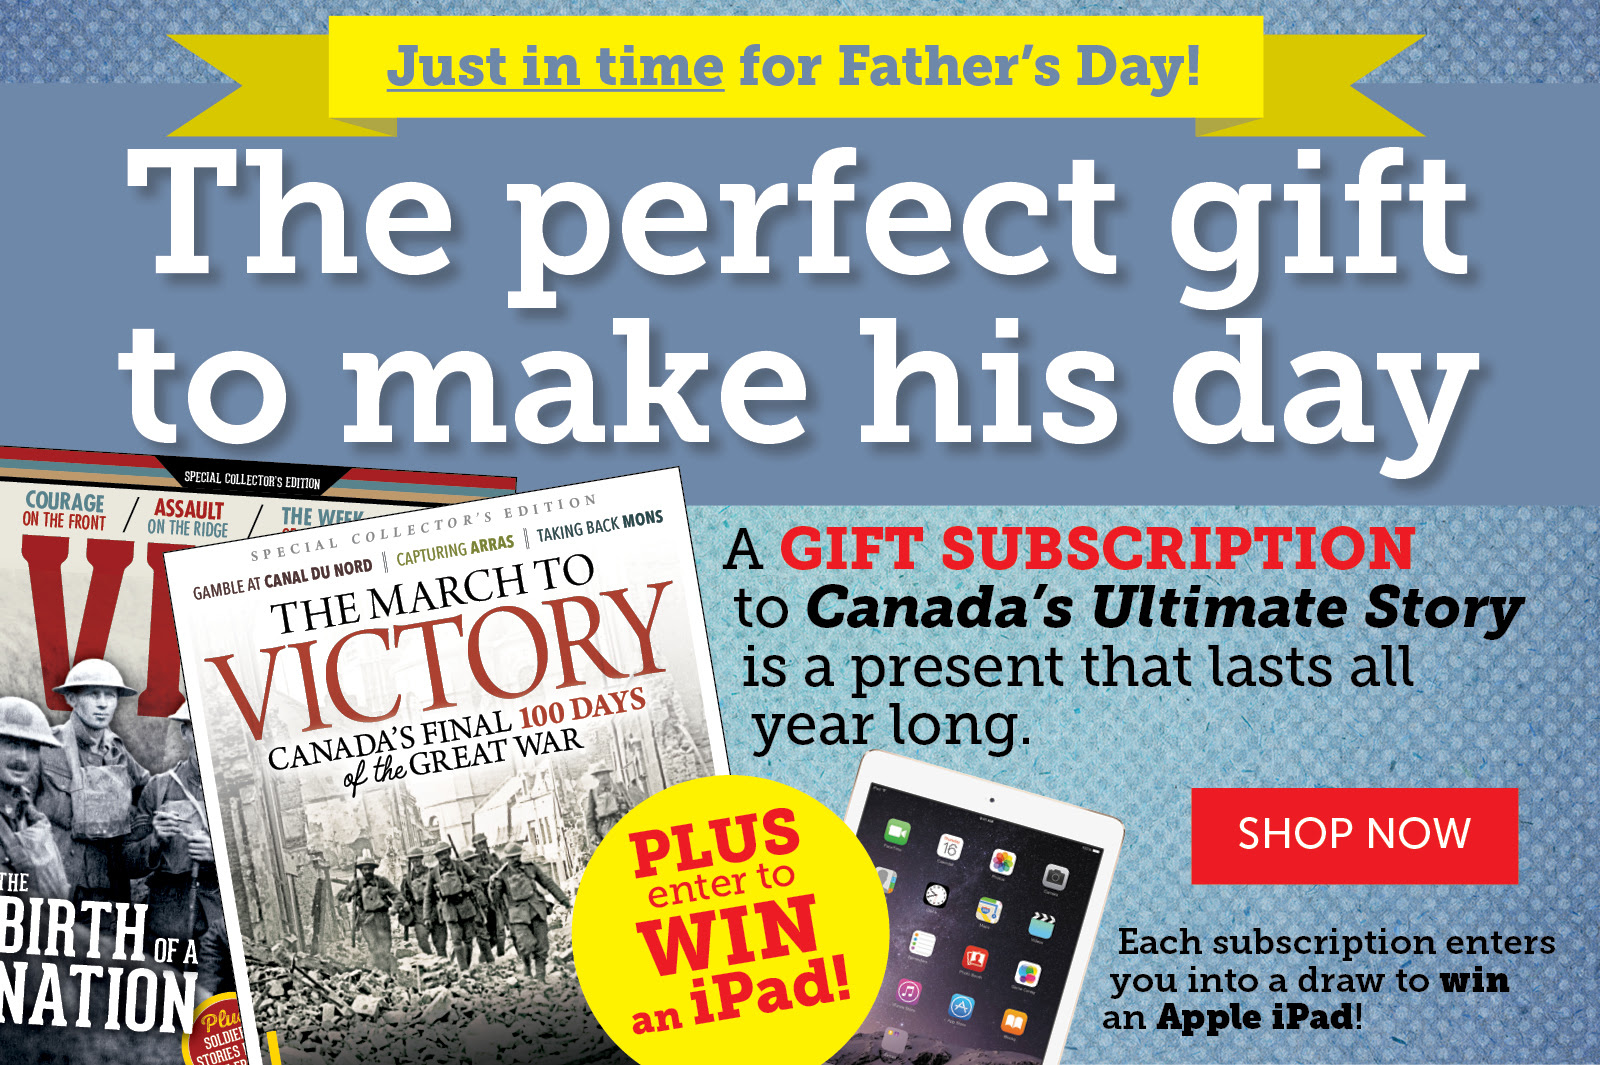 Get dad a gift subscription to Canada's Ultimate Story!